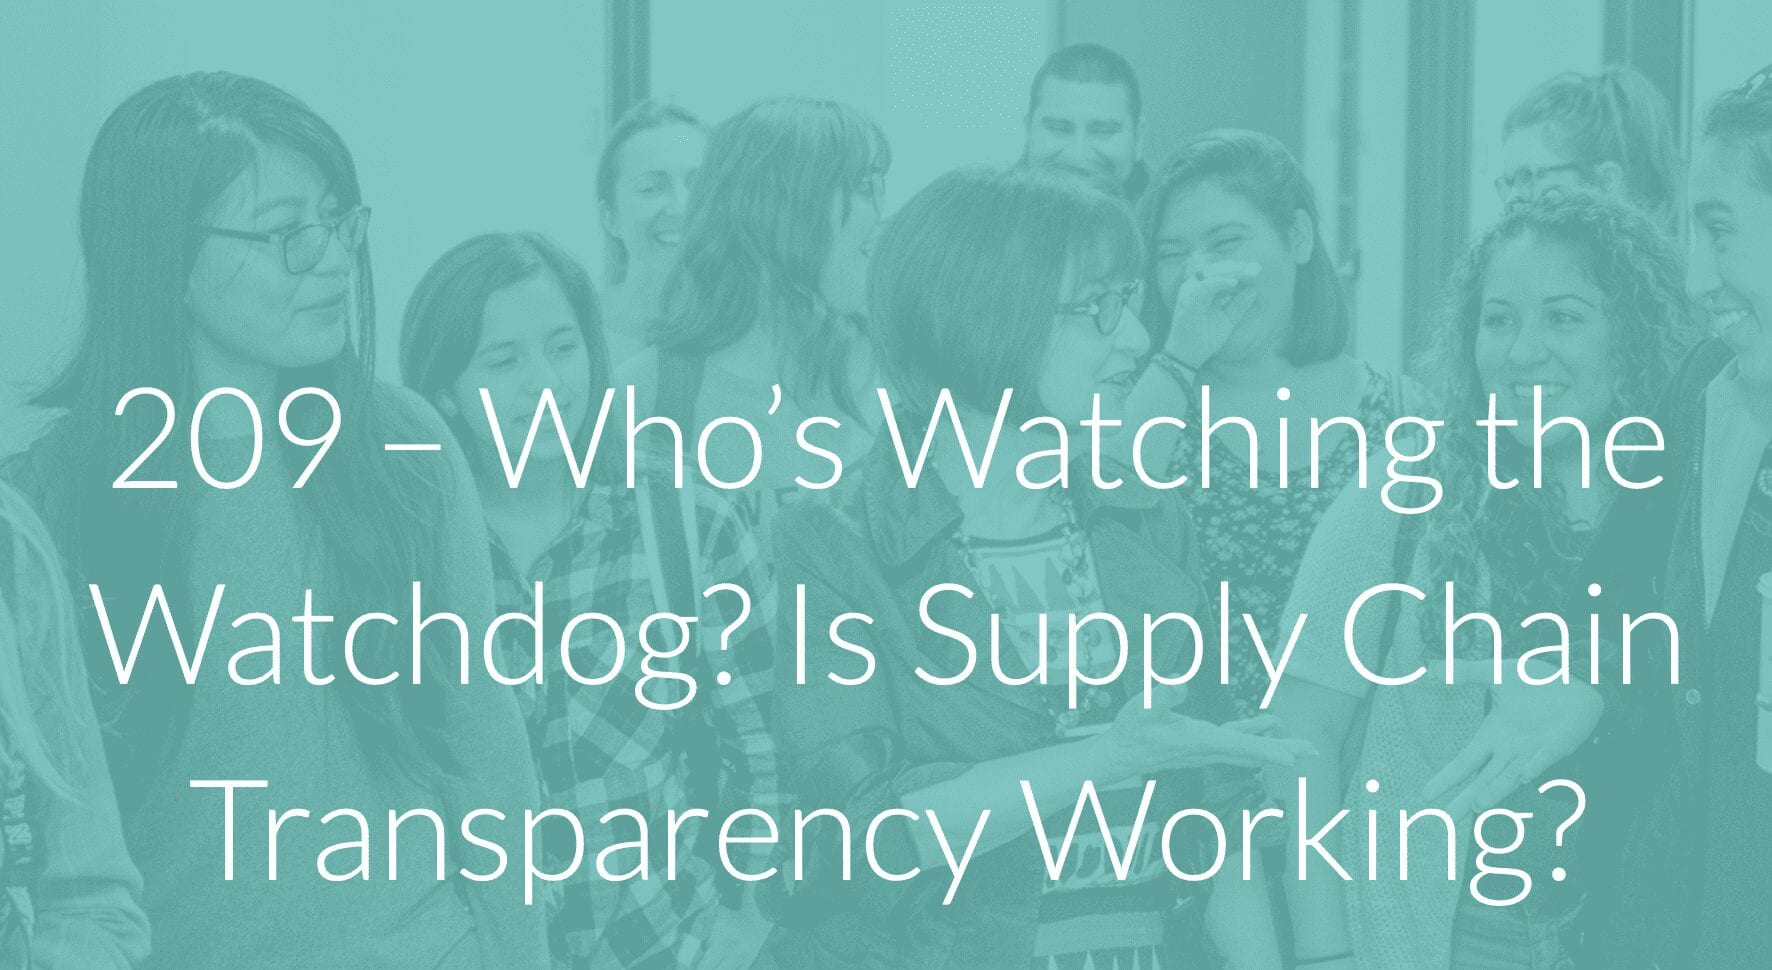 Podcast Episode: Who's Watching the Watchdog? Is Supply Chain Transparency Working?